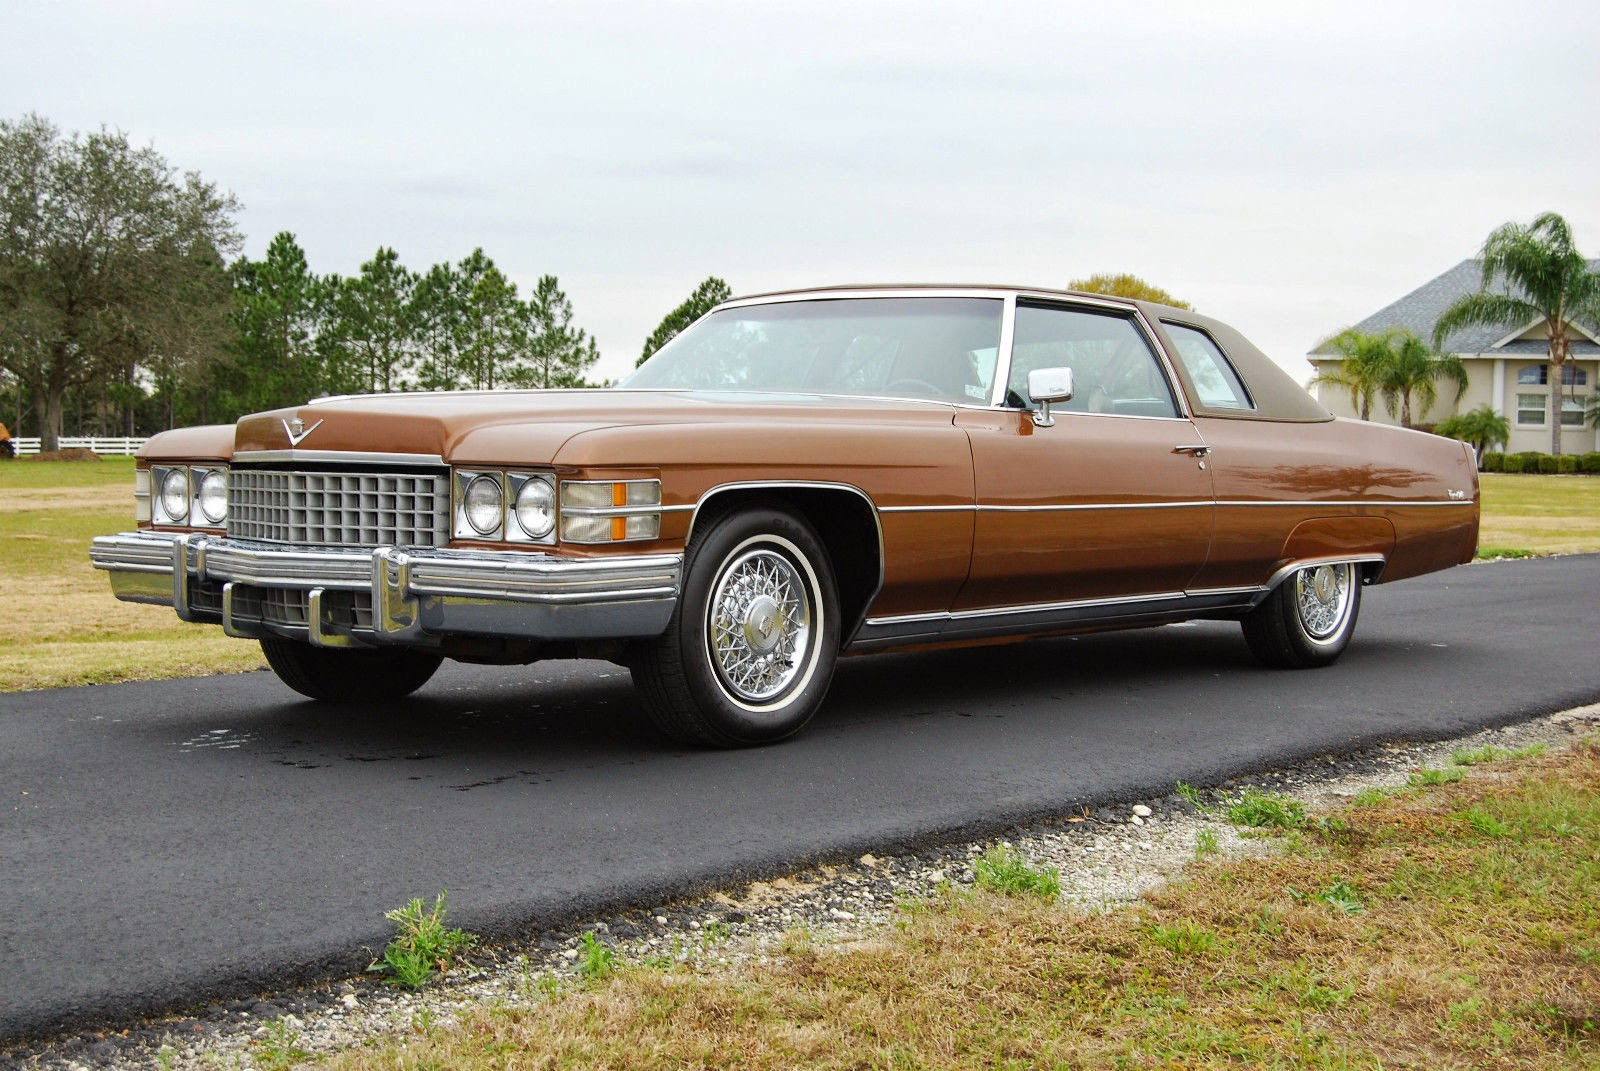 X X further Cadi Fbminoavelourlightivorygold Edit moreover X X in addition Bcadillac Bcoupe Bdeville likewise Ce Lrg. on 1974 cadillac sedan deville